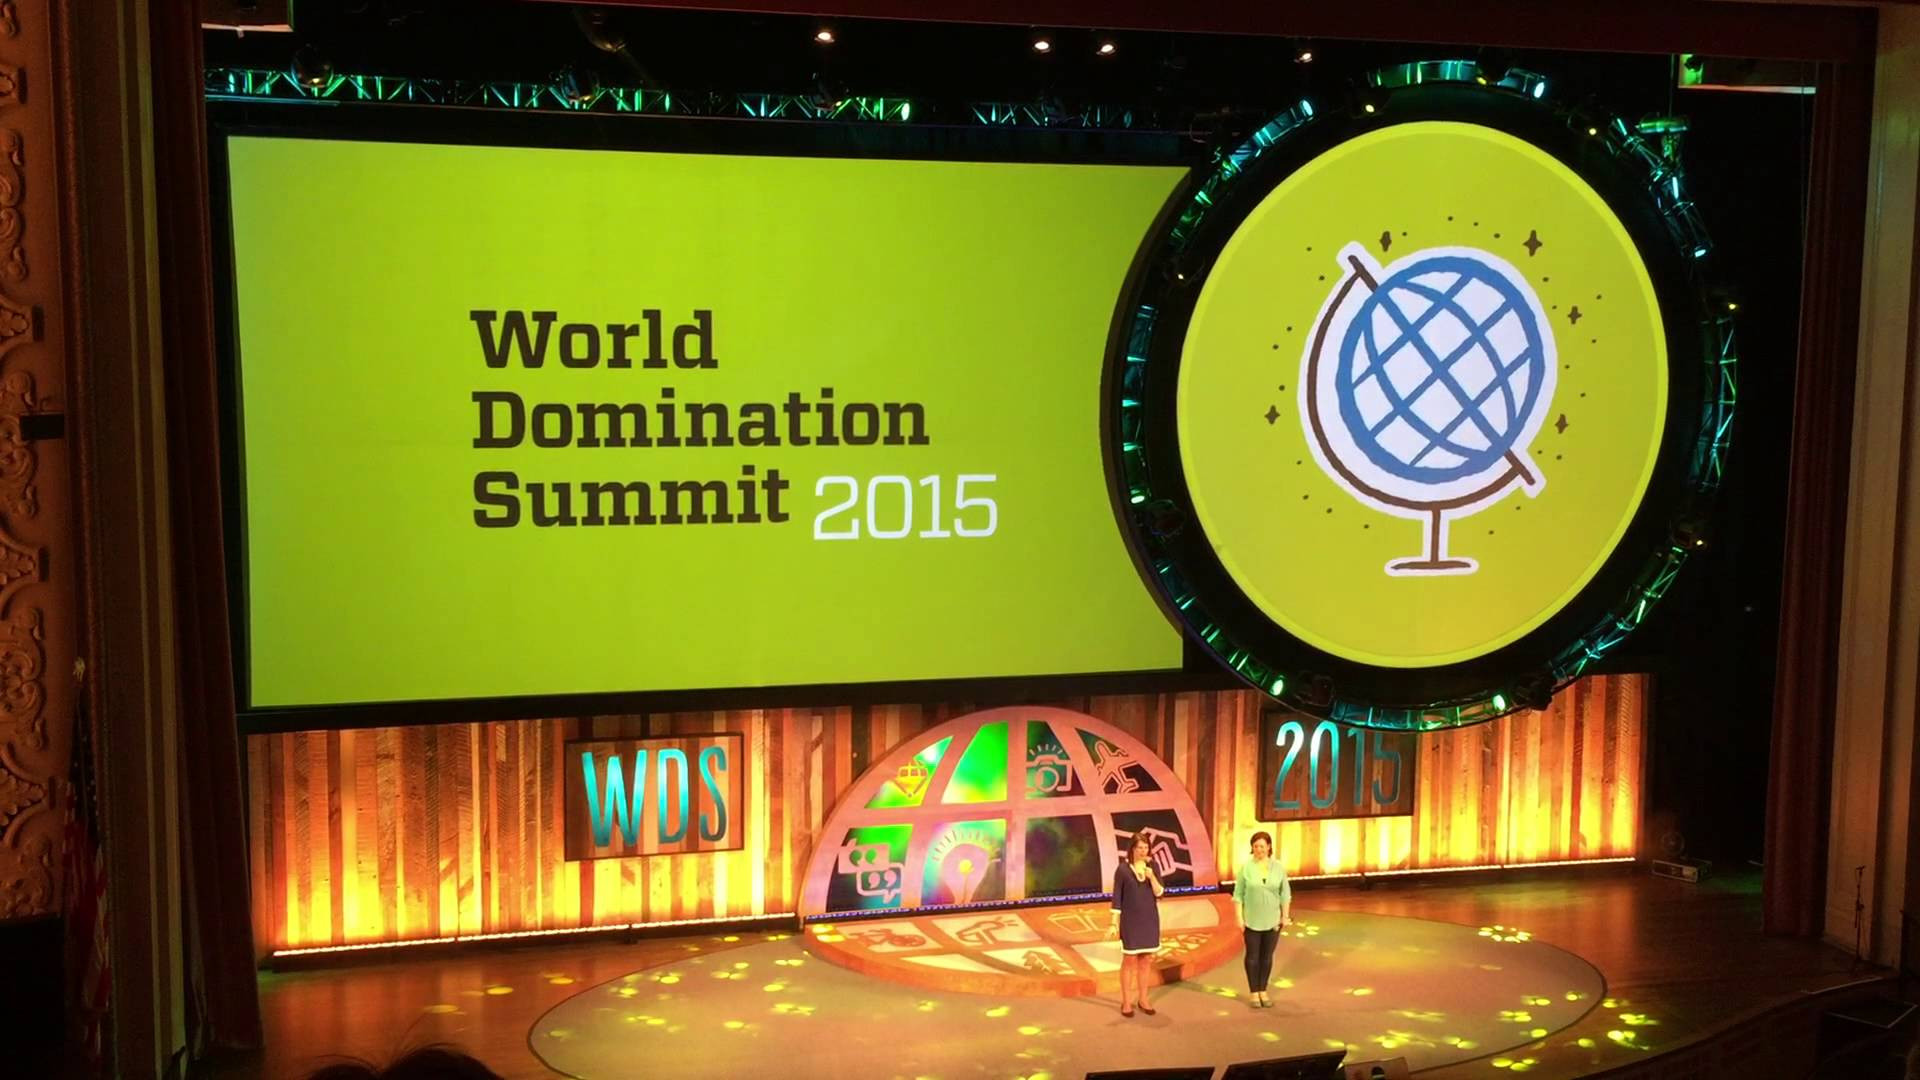 World Domination Attendee Story